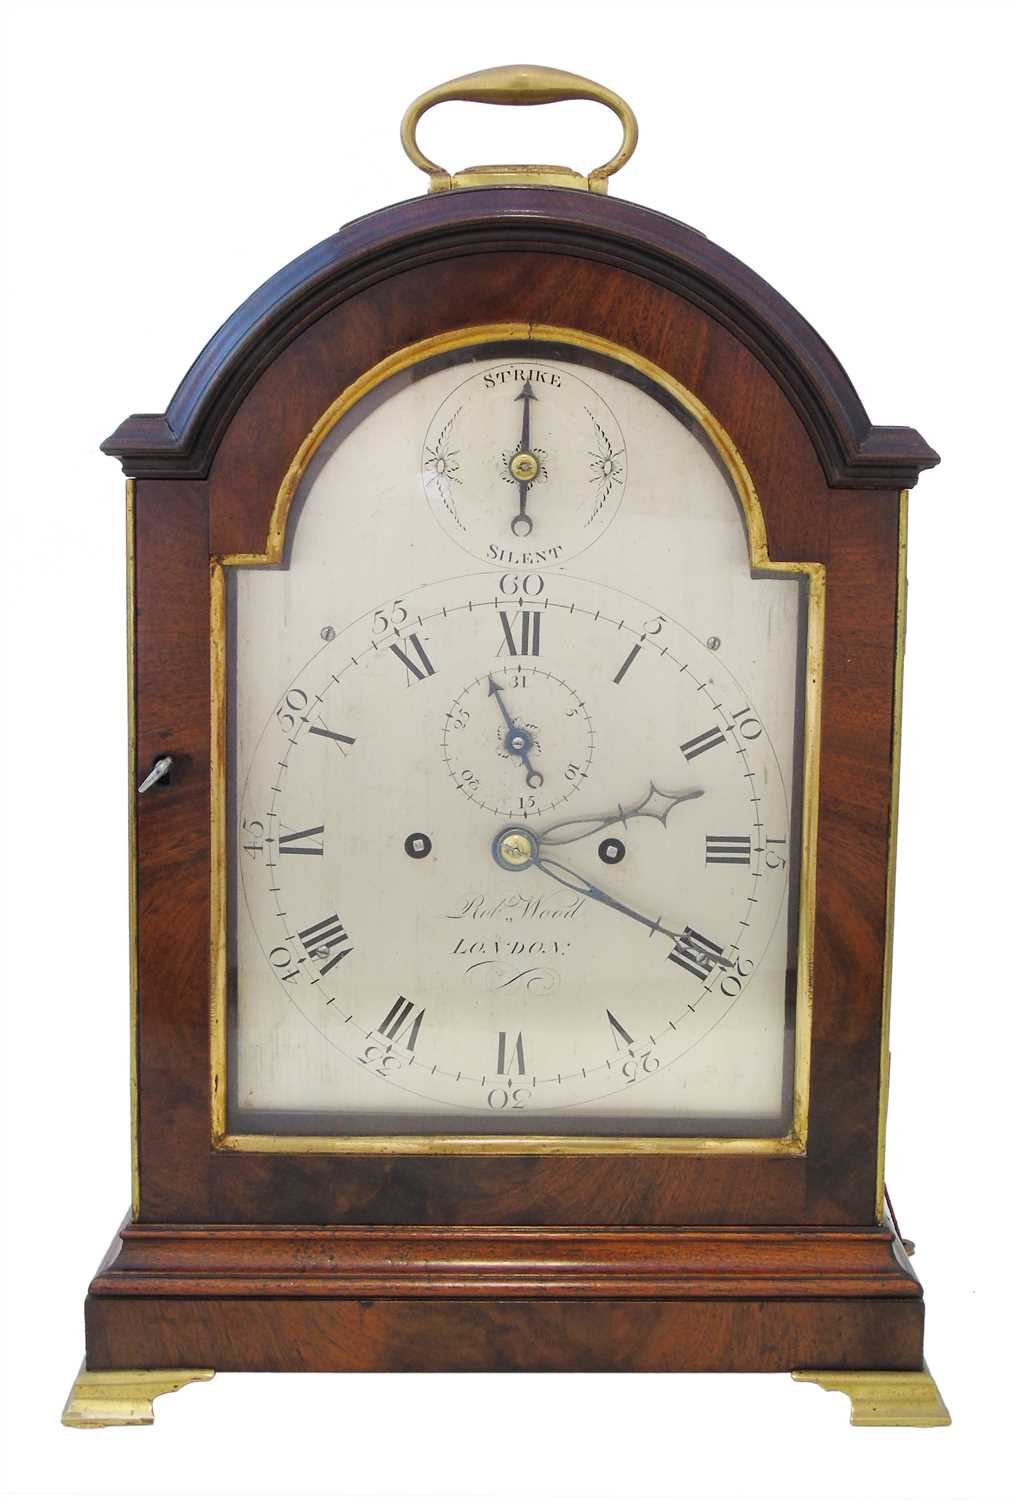 Lot 289-Robert Wood London (1828-32) bracket clock, double fuse 8-day movement